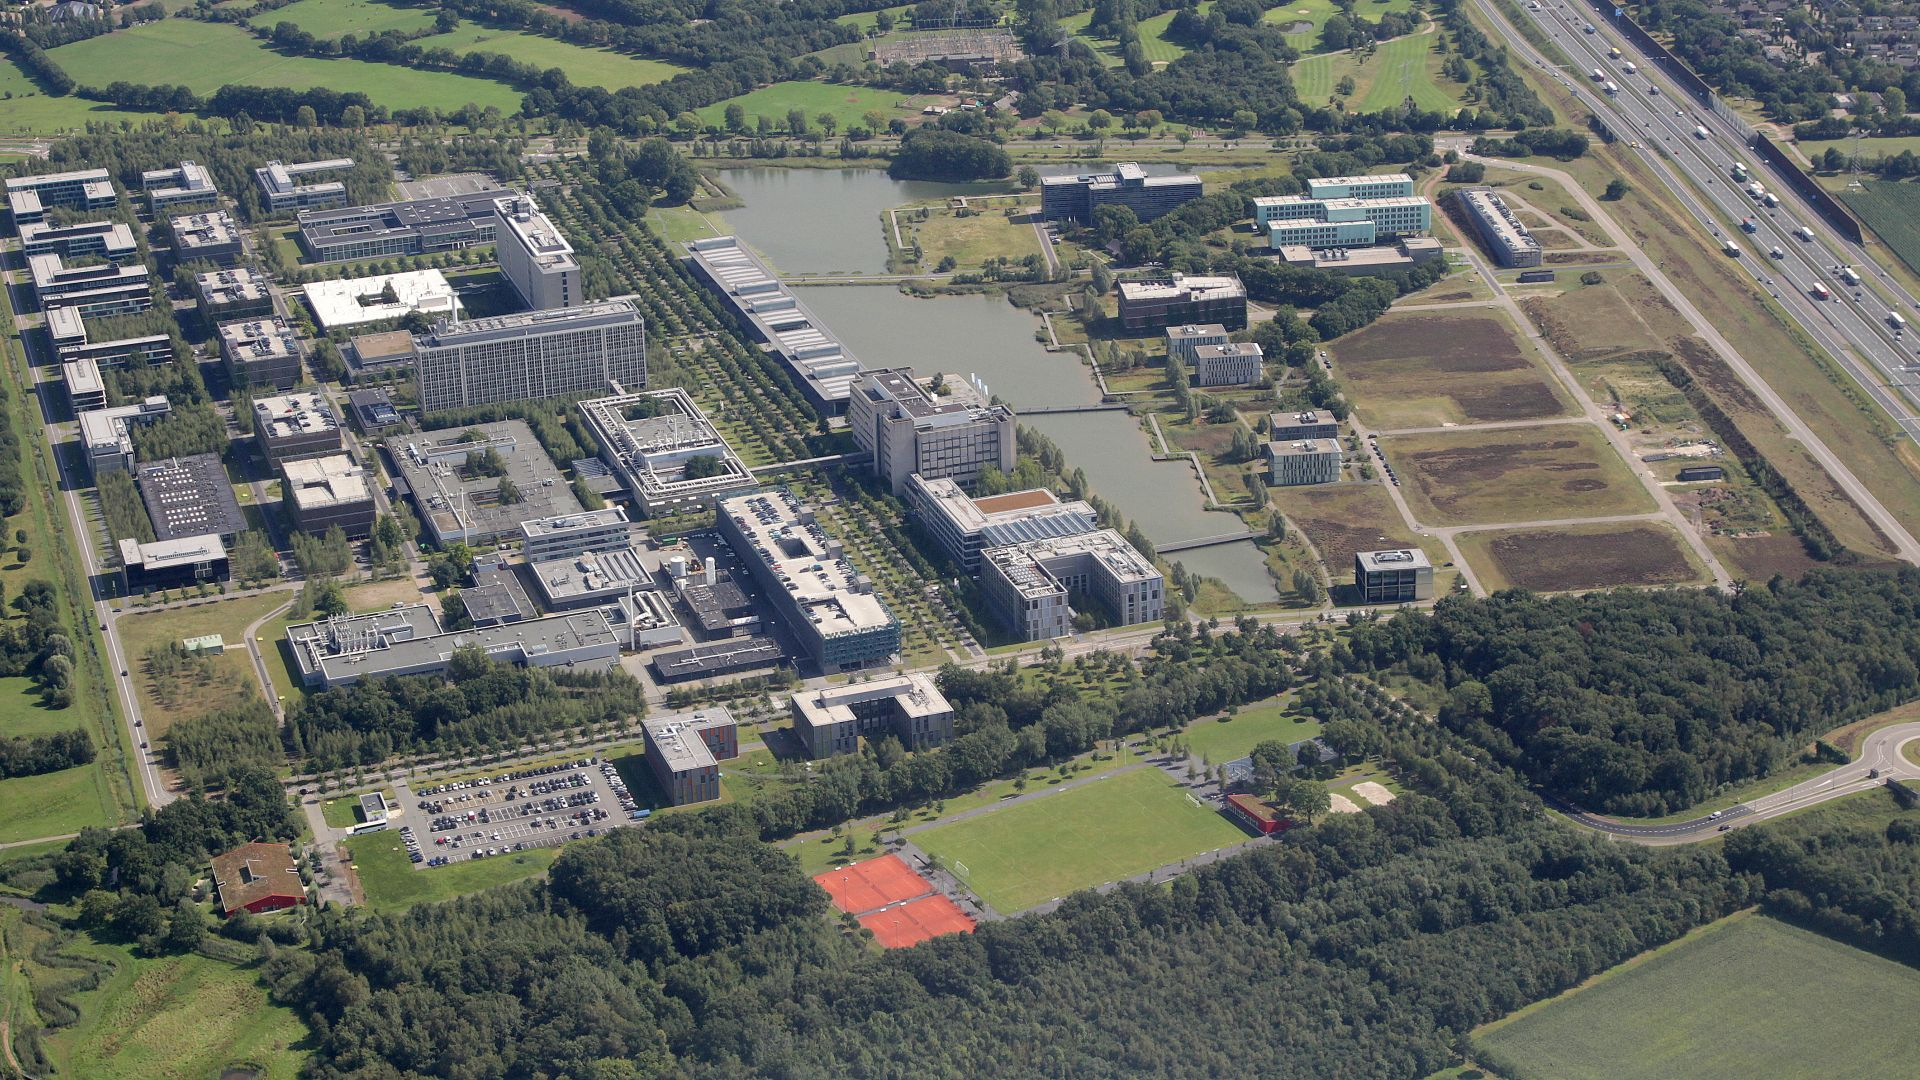 High Tech Campus Eindhoven aerial view